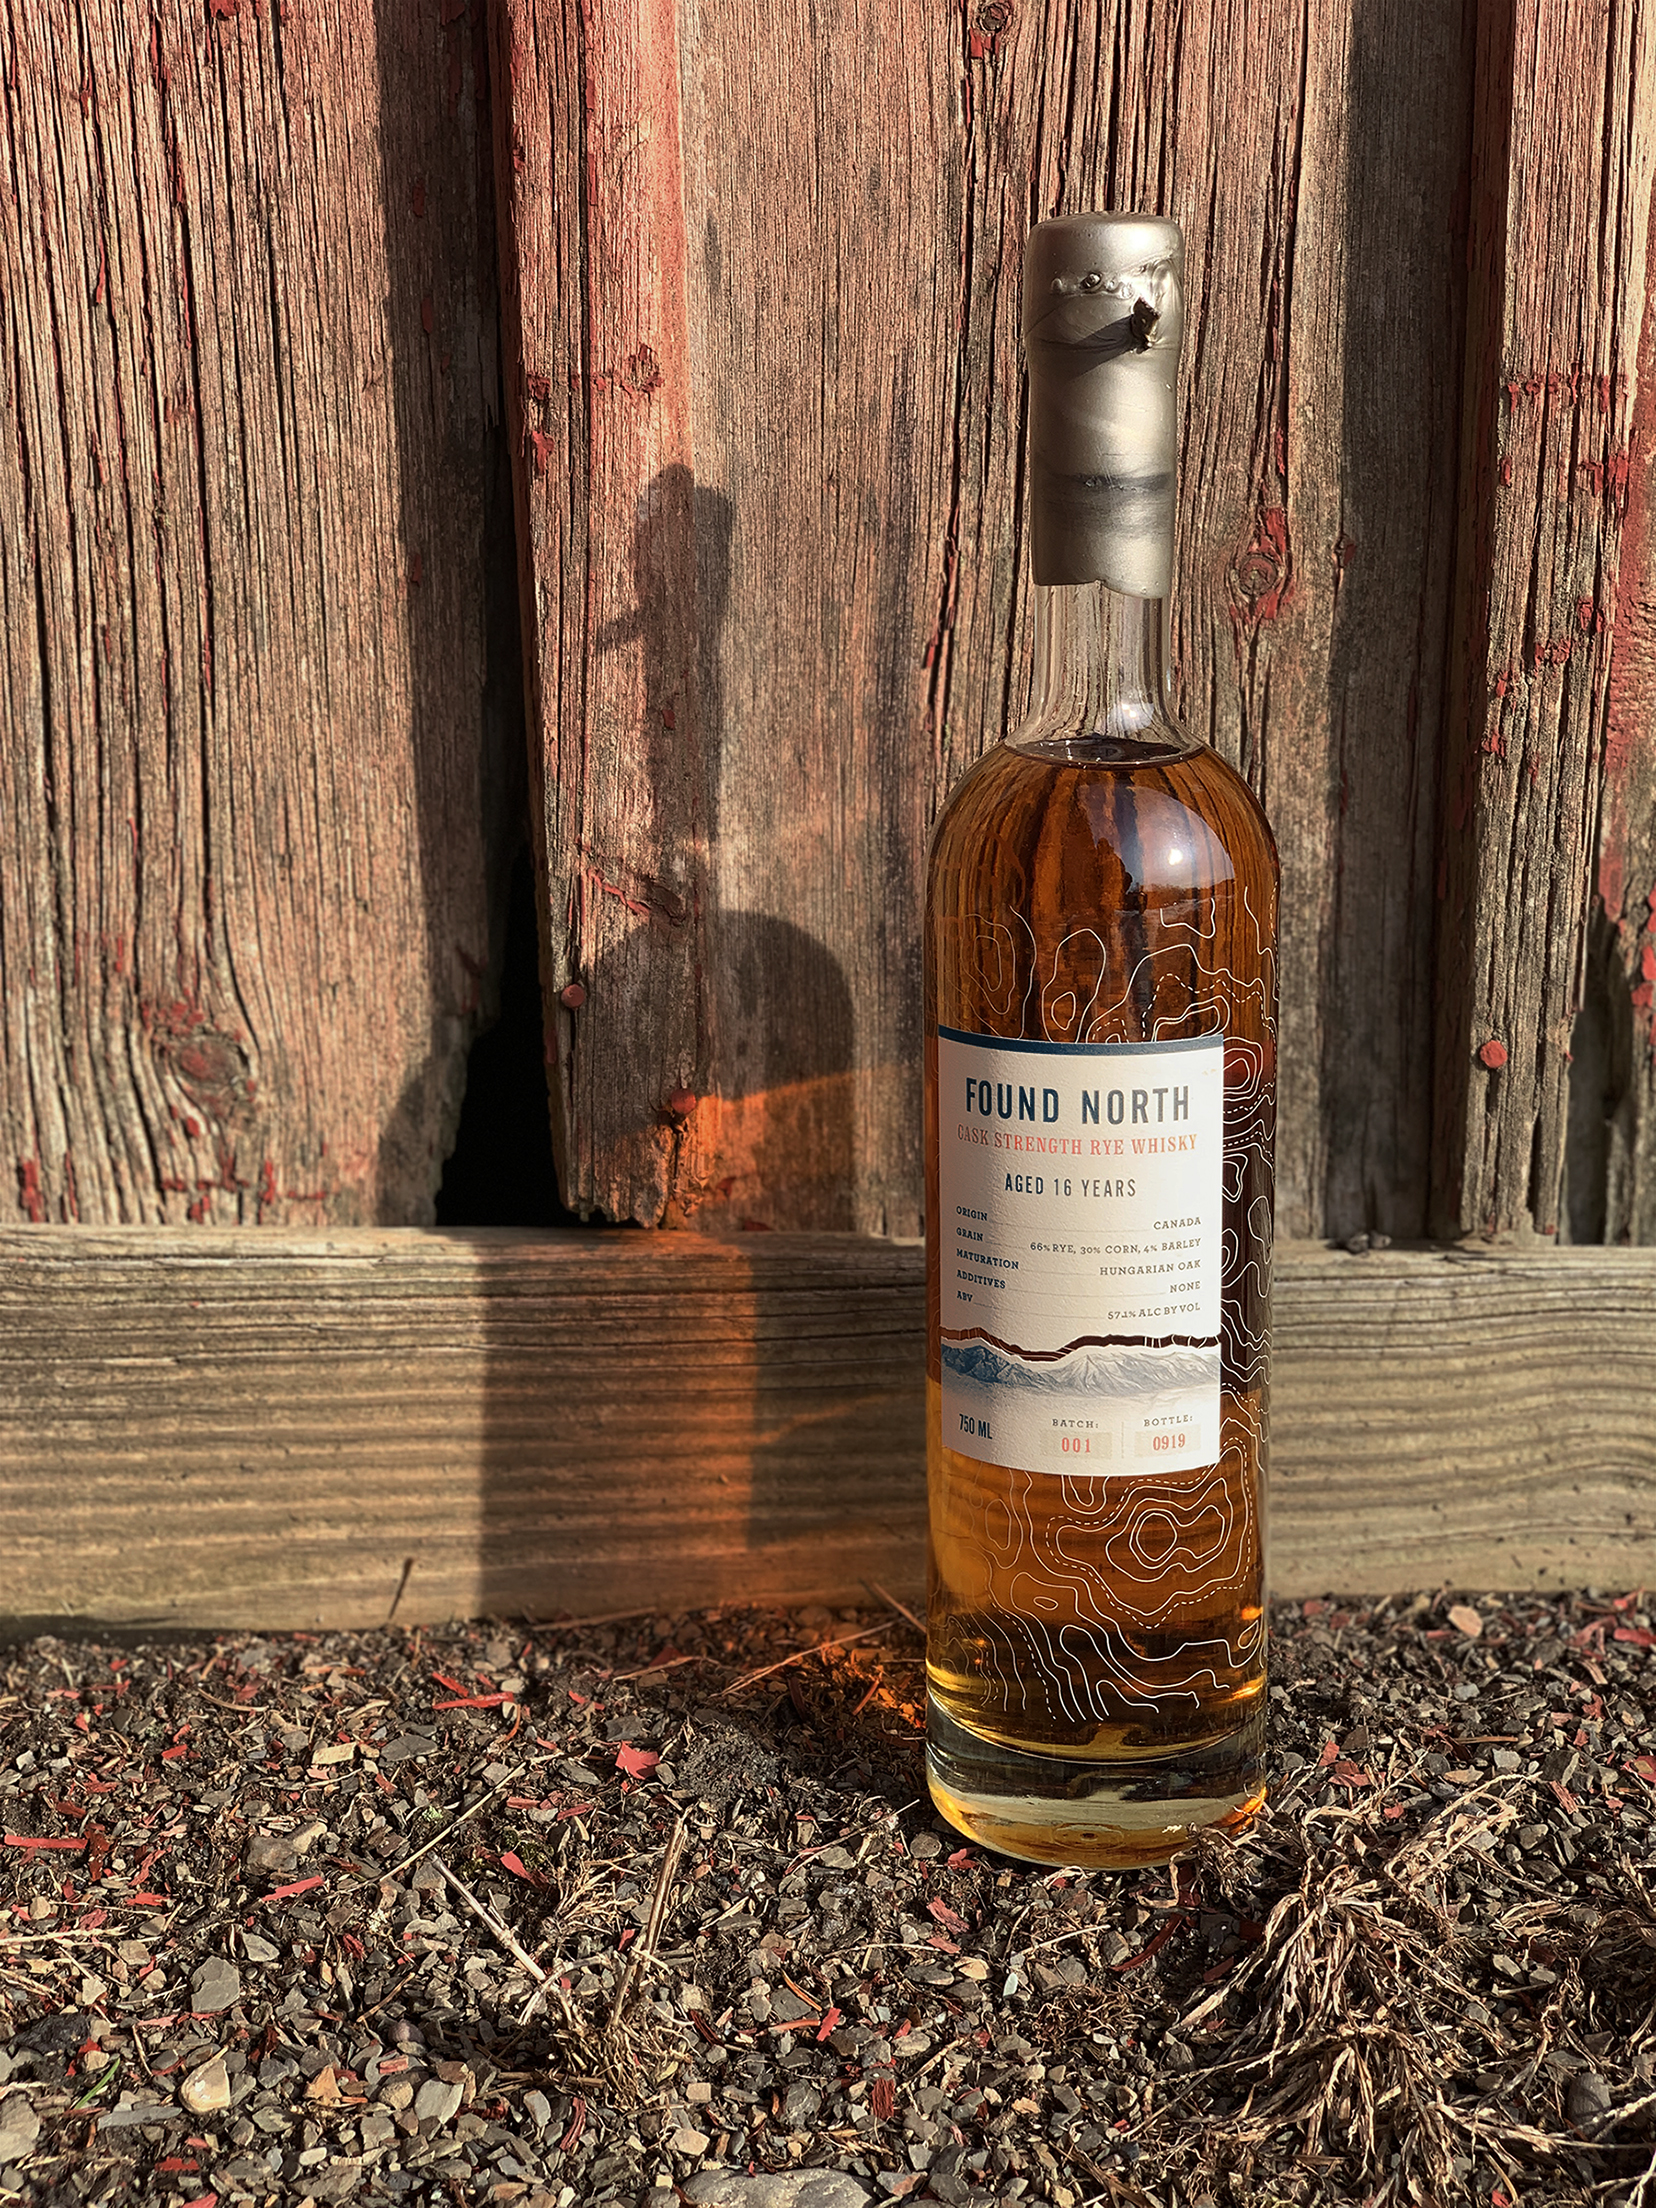 Thumbnail image of Batch 001 Cask Strength Rye Whisky in front of a shed